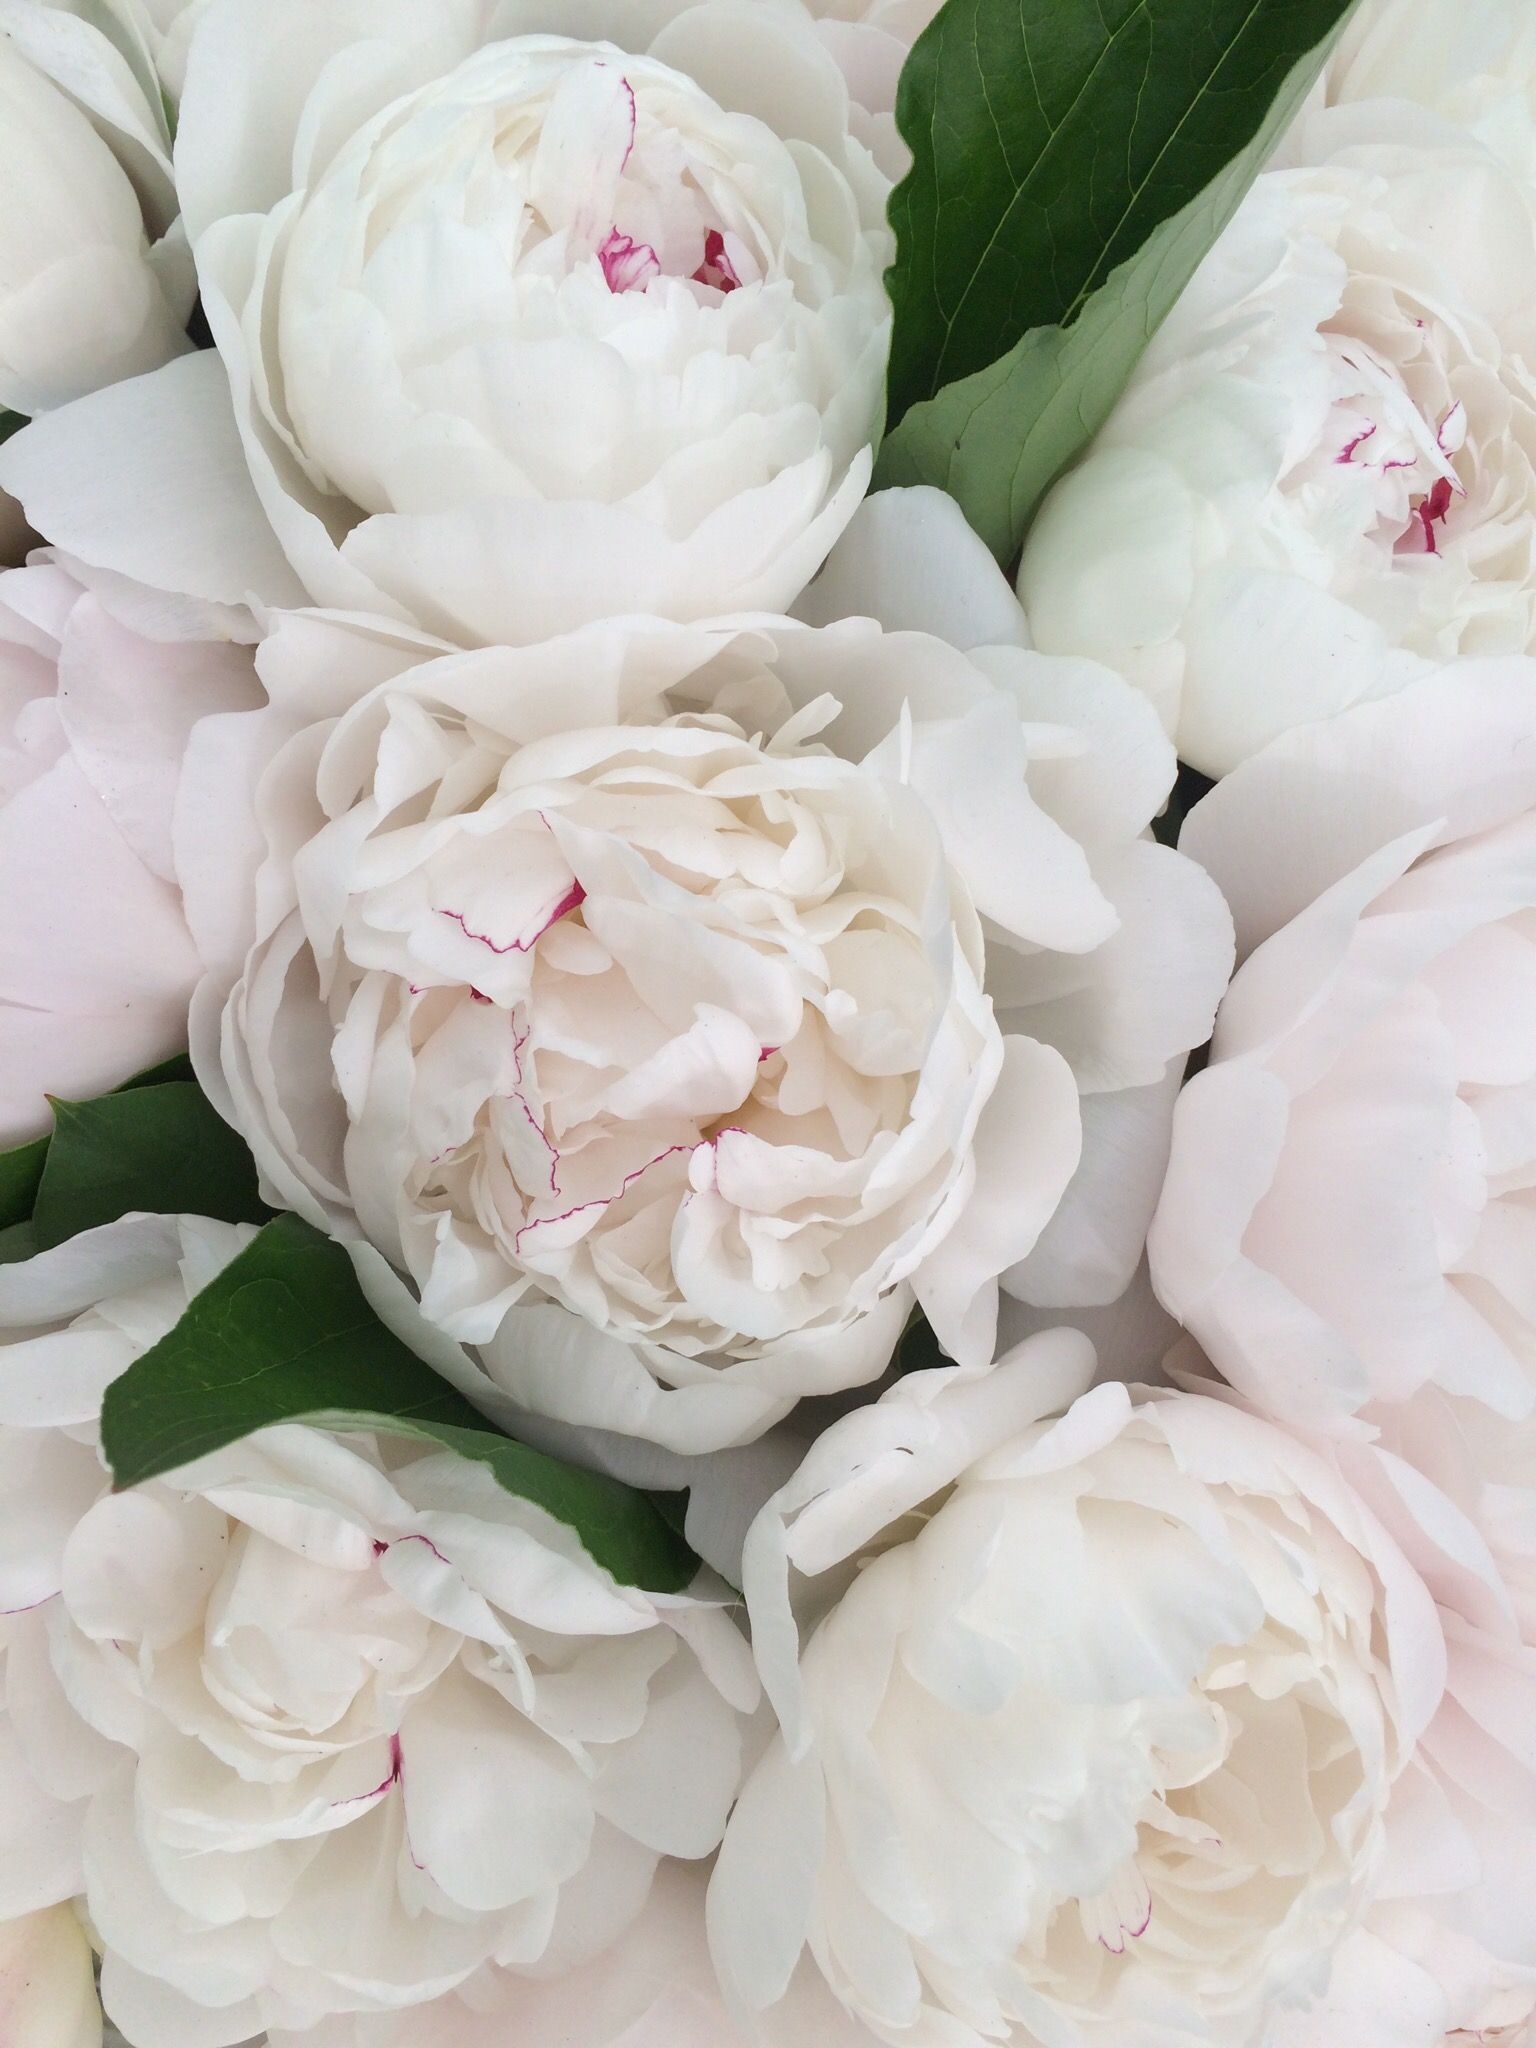 White peonies - luxurious flowers in your flower bed